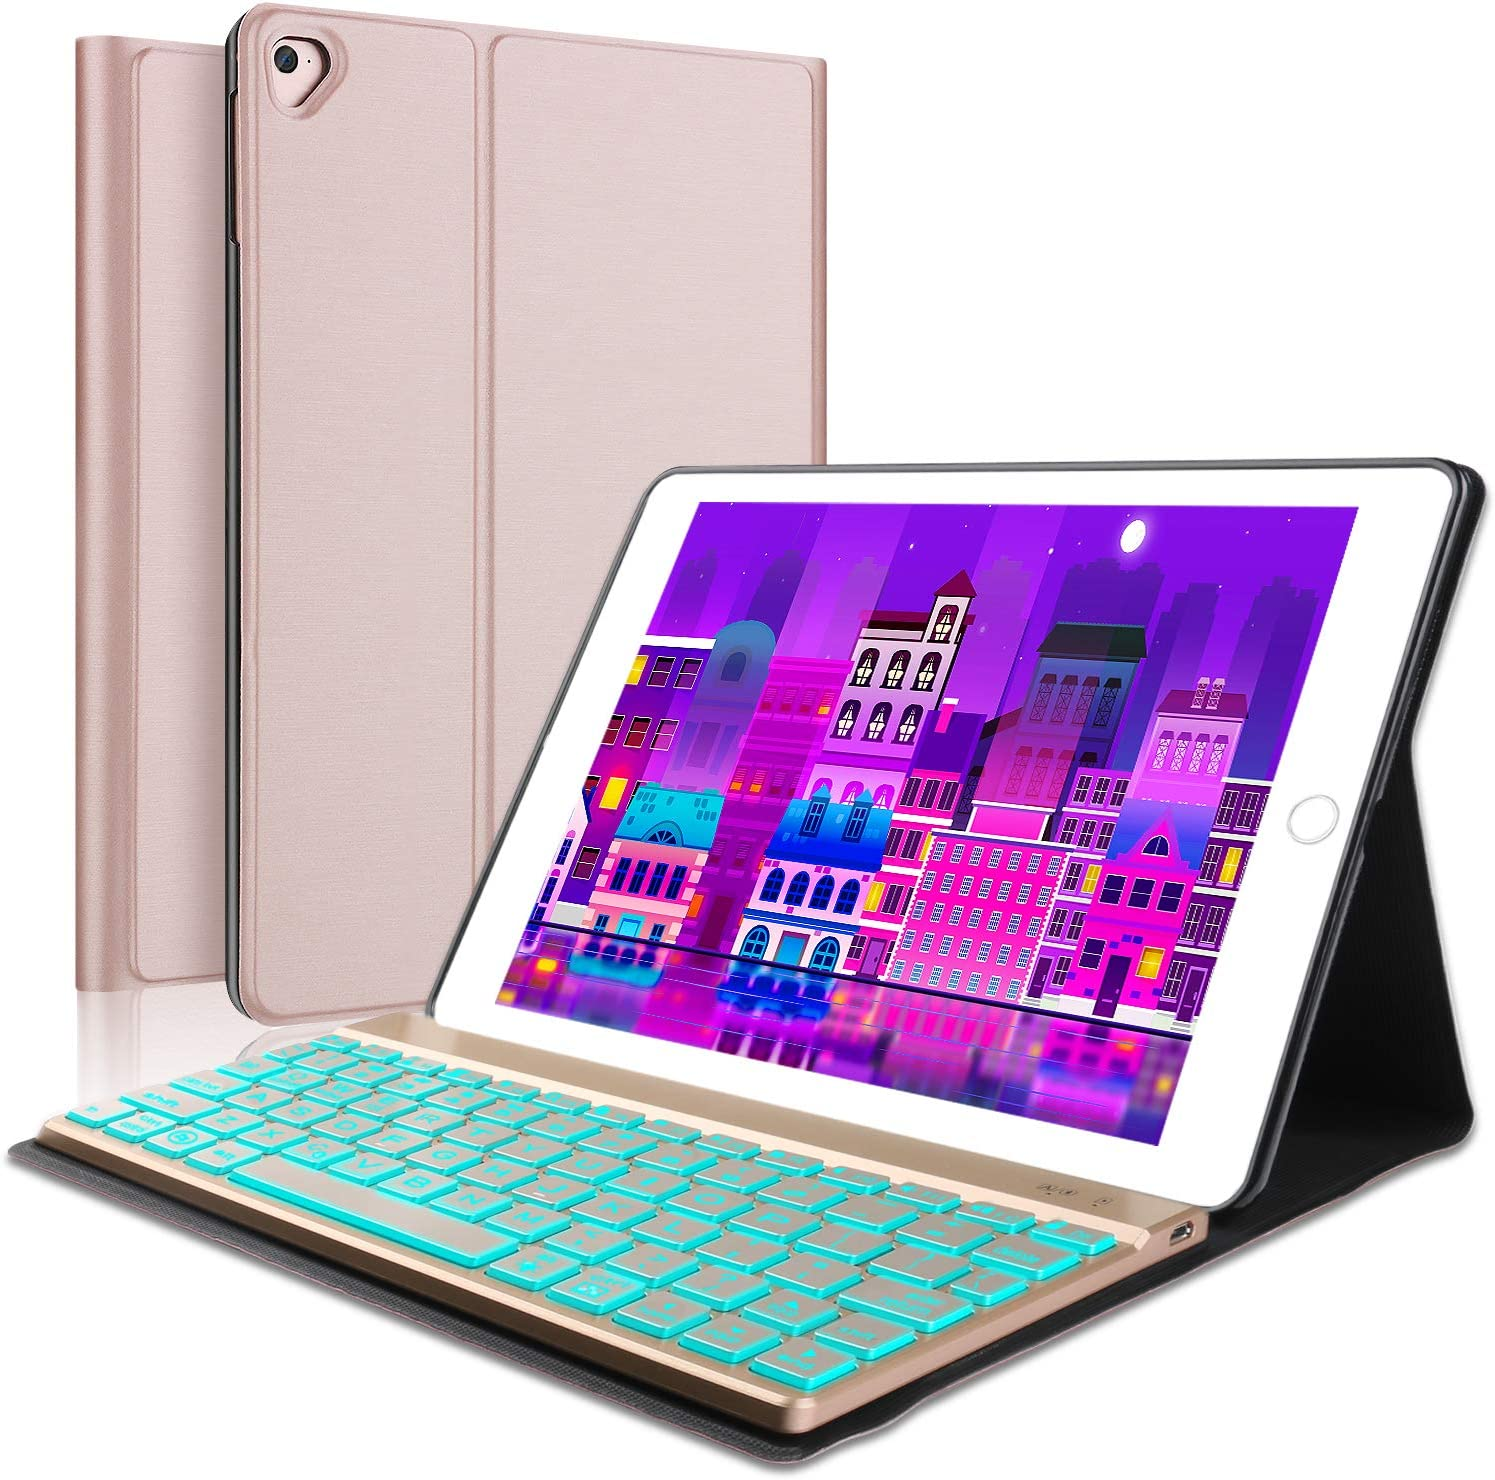 Keyboard Case iPad 9.7 2018(6th Gen) - iPad 9.7 2017(5th Gen) - iPad Air 2&1 - iPad Pro 9.7-7 Colors Backlit Detachable Keyboard - Slim Leather Folio Cover - iPad 9.7 Keyboard Case(Rose Gold)